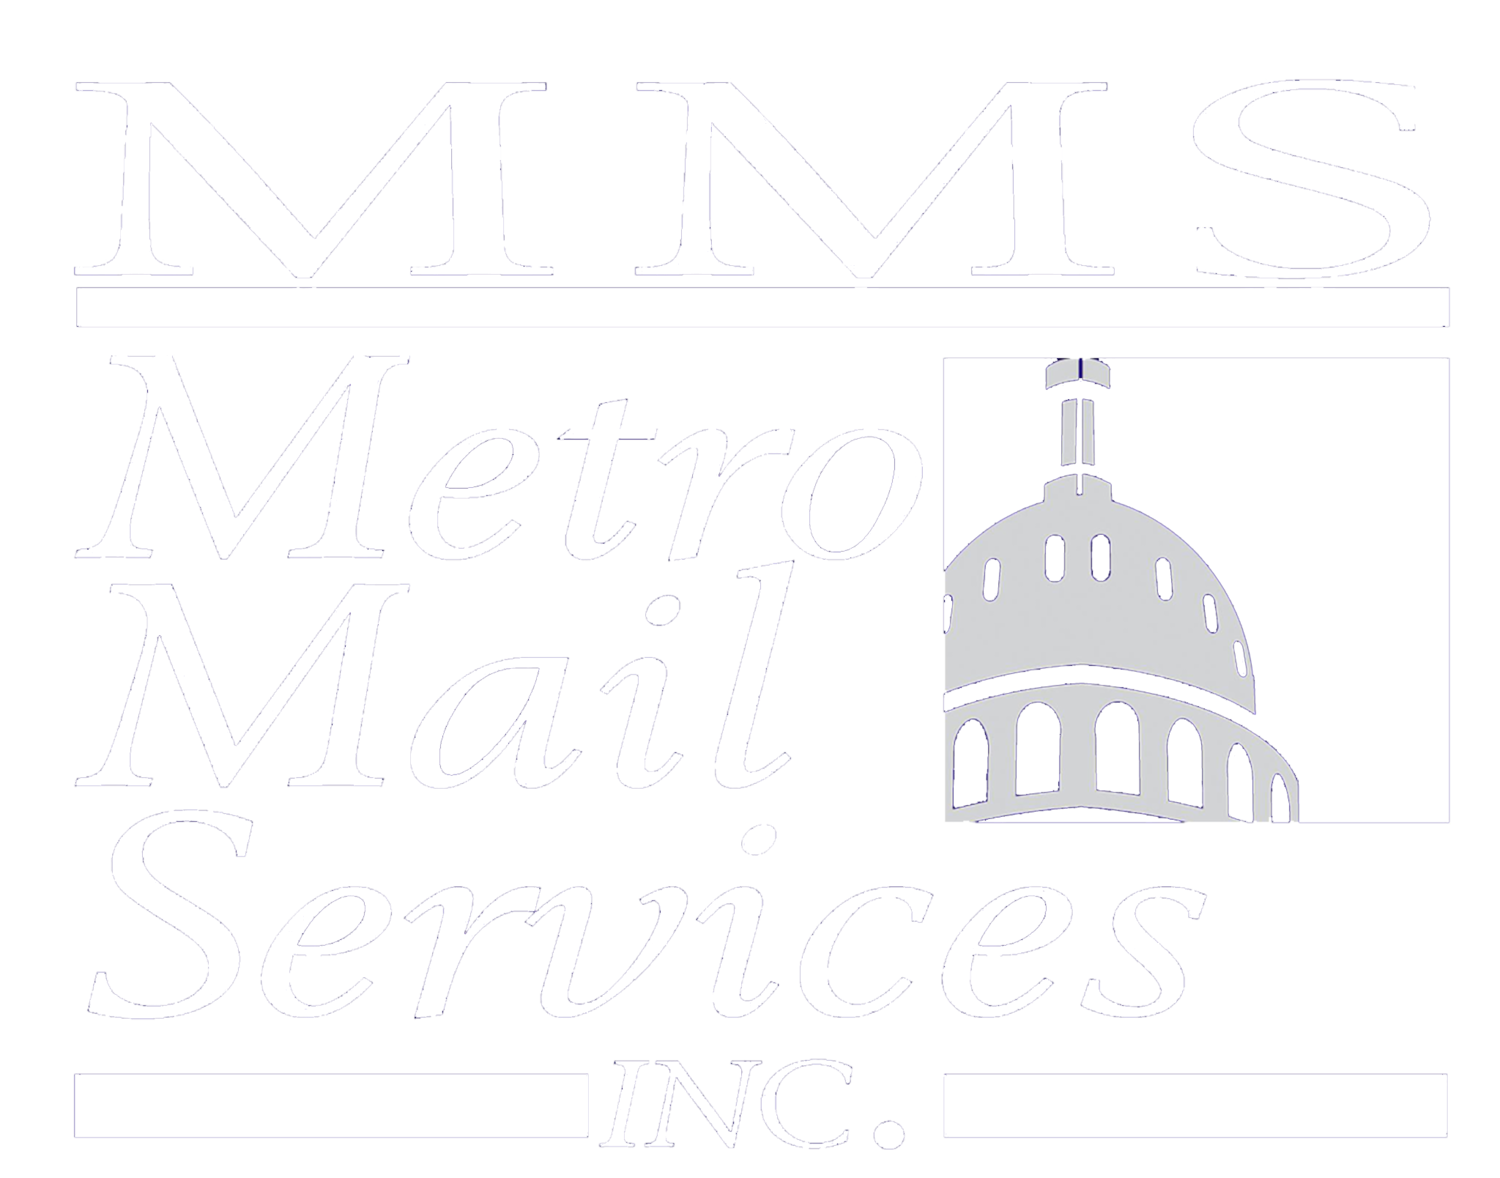 Metro Mail Services, Inc. - Providing Postage Meters, Copiers and Shredders in the Washington D.C. Area